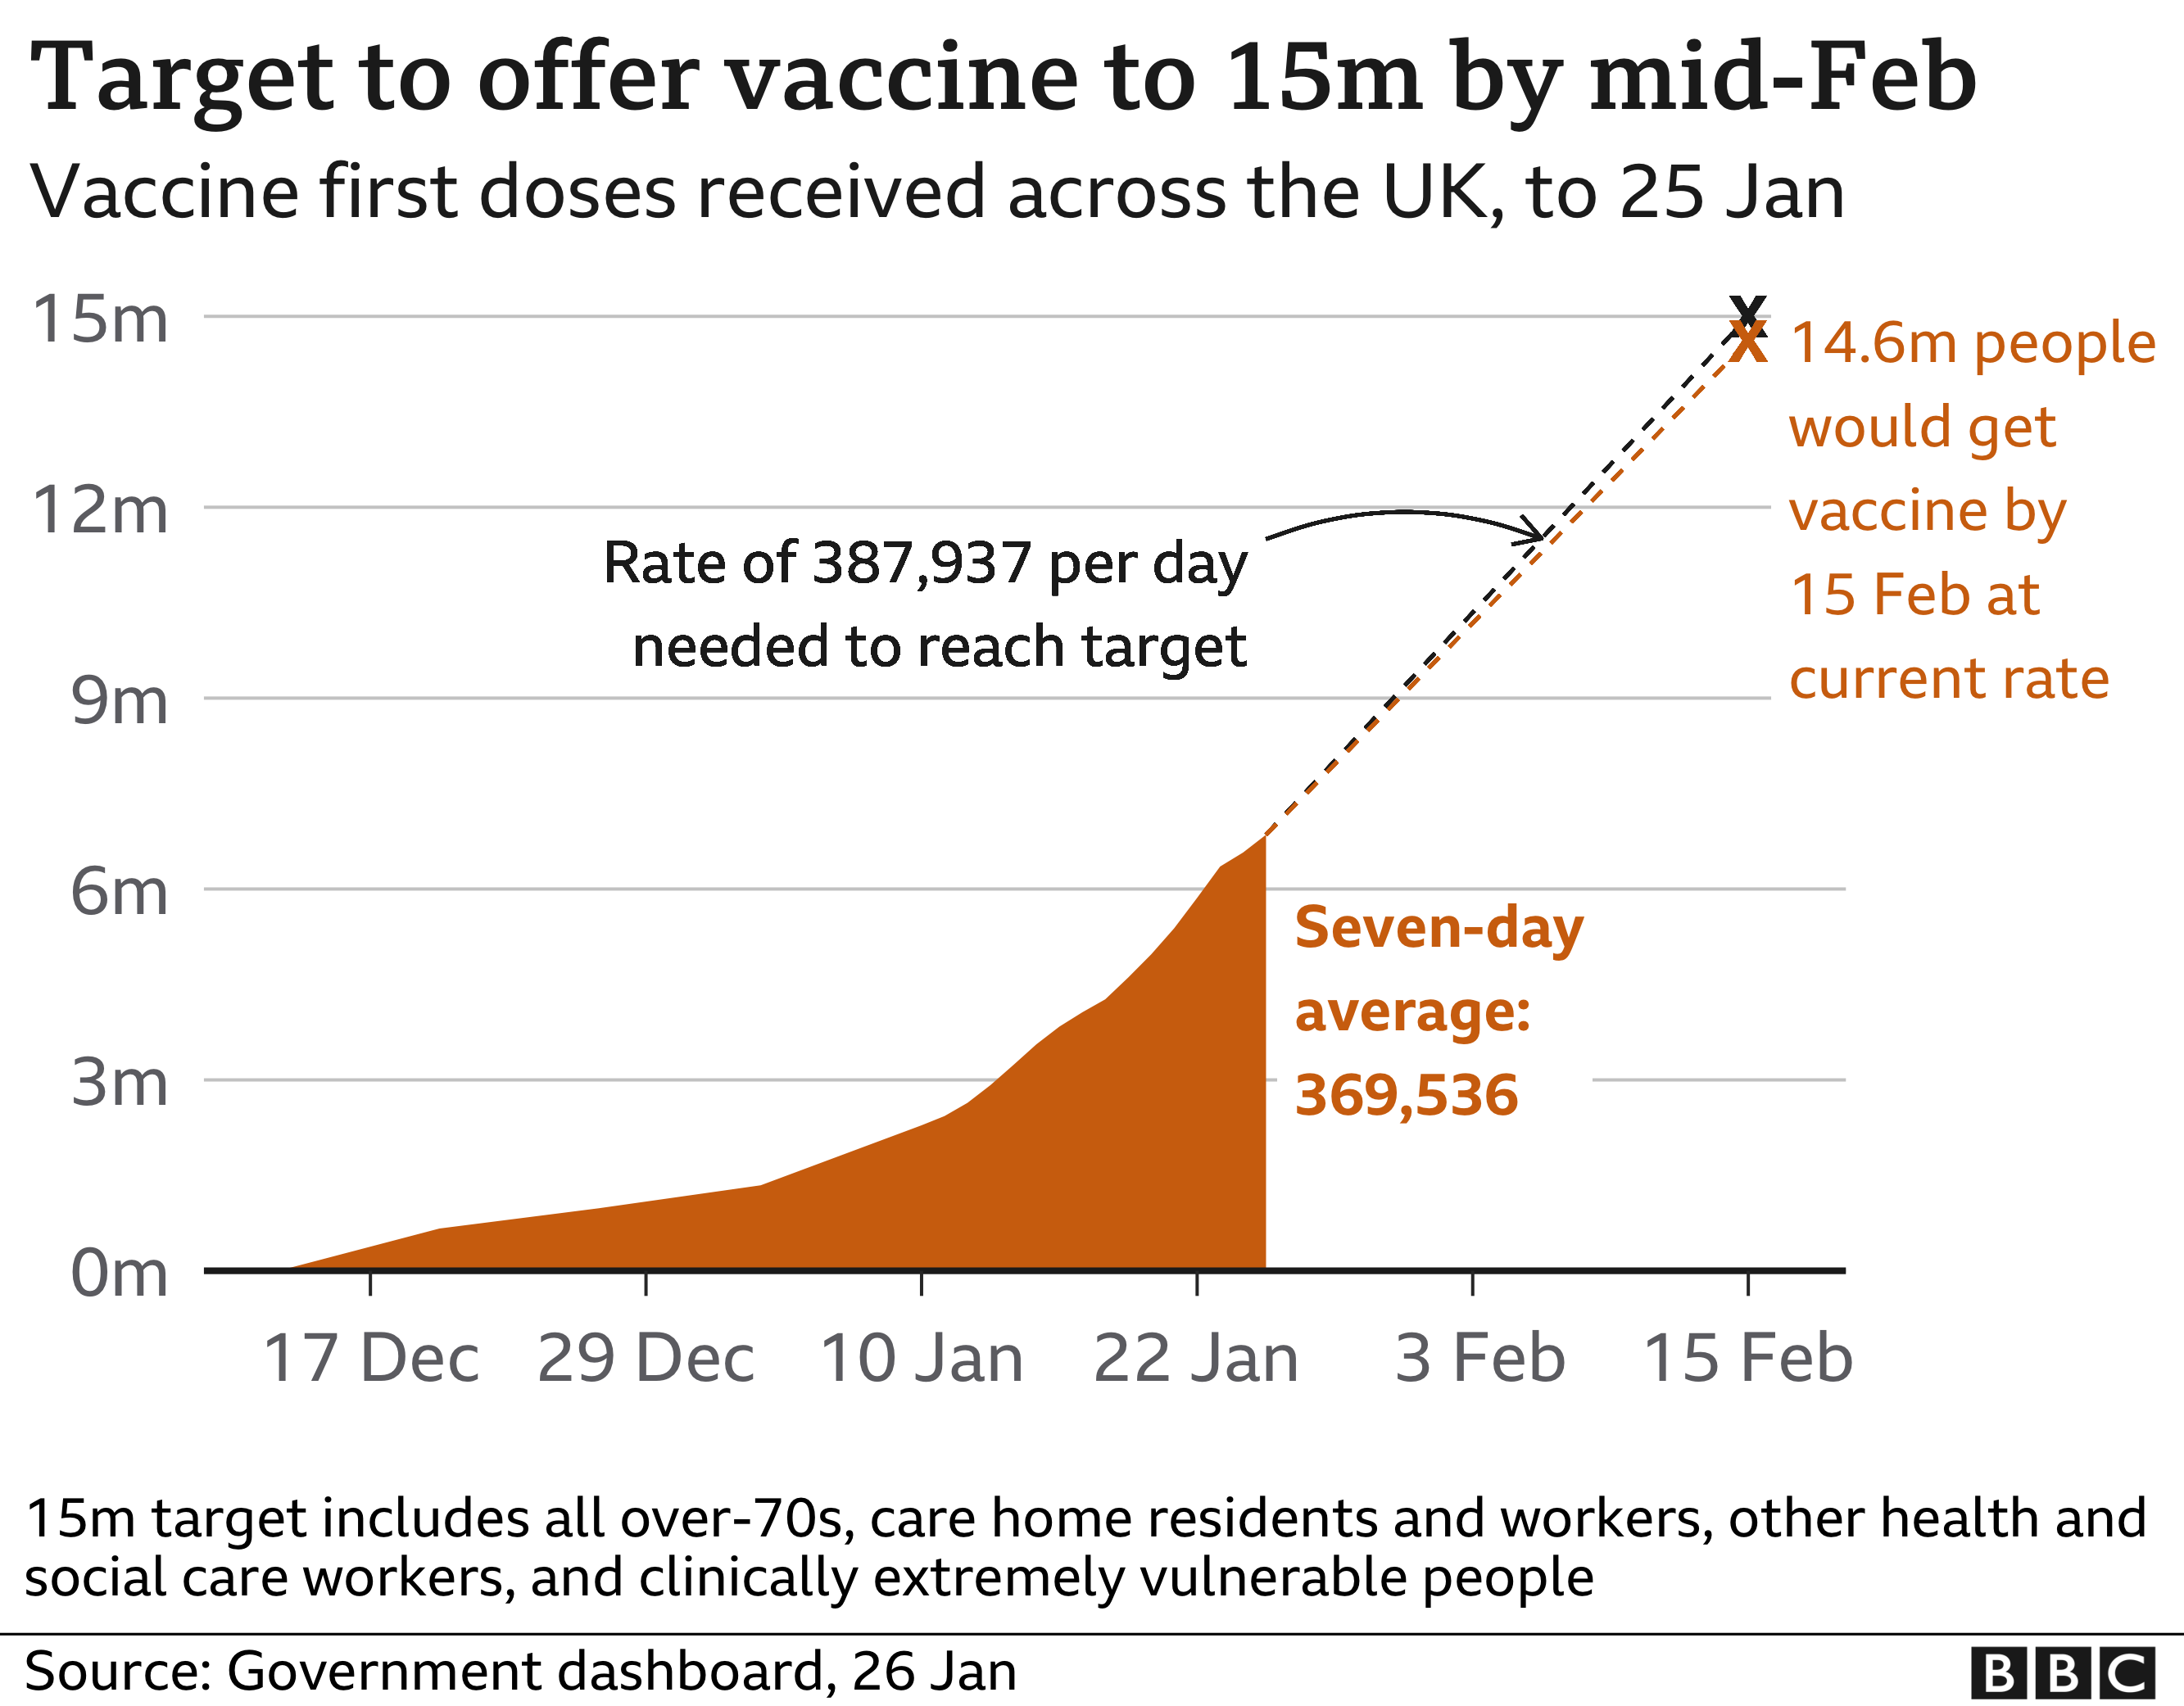 Chart shows progress towards vaccine target of 15m